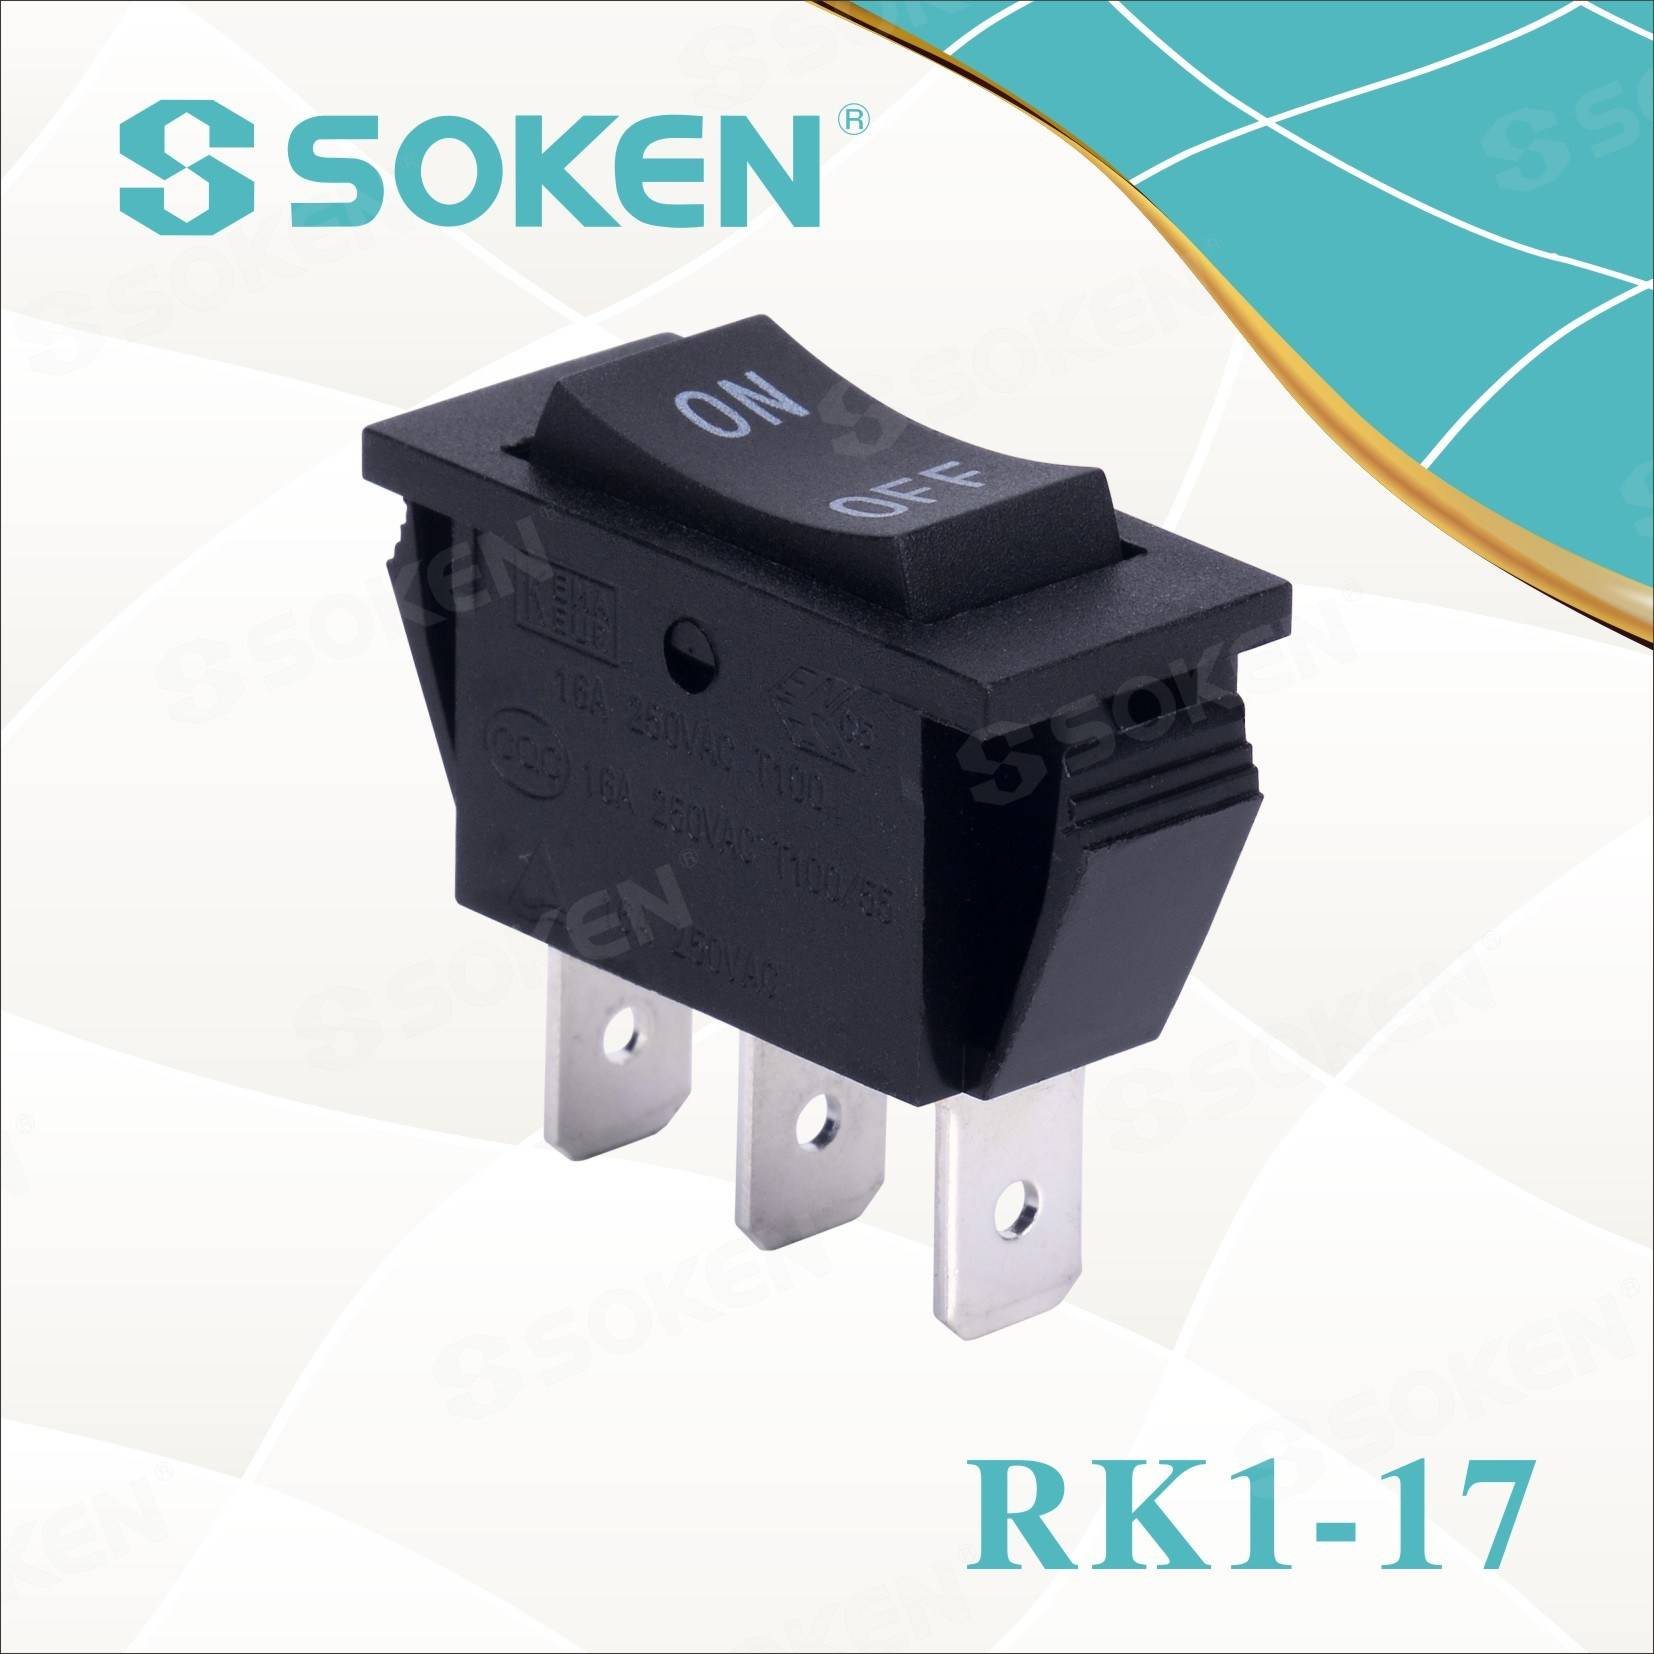 Soken Rk1-17 1X3 on off on 3pins Switch rookaha